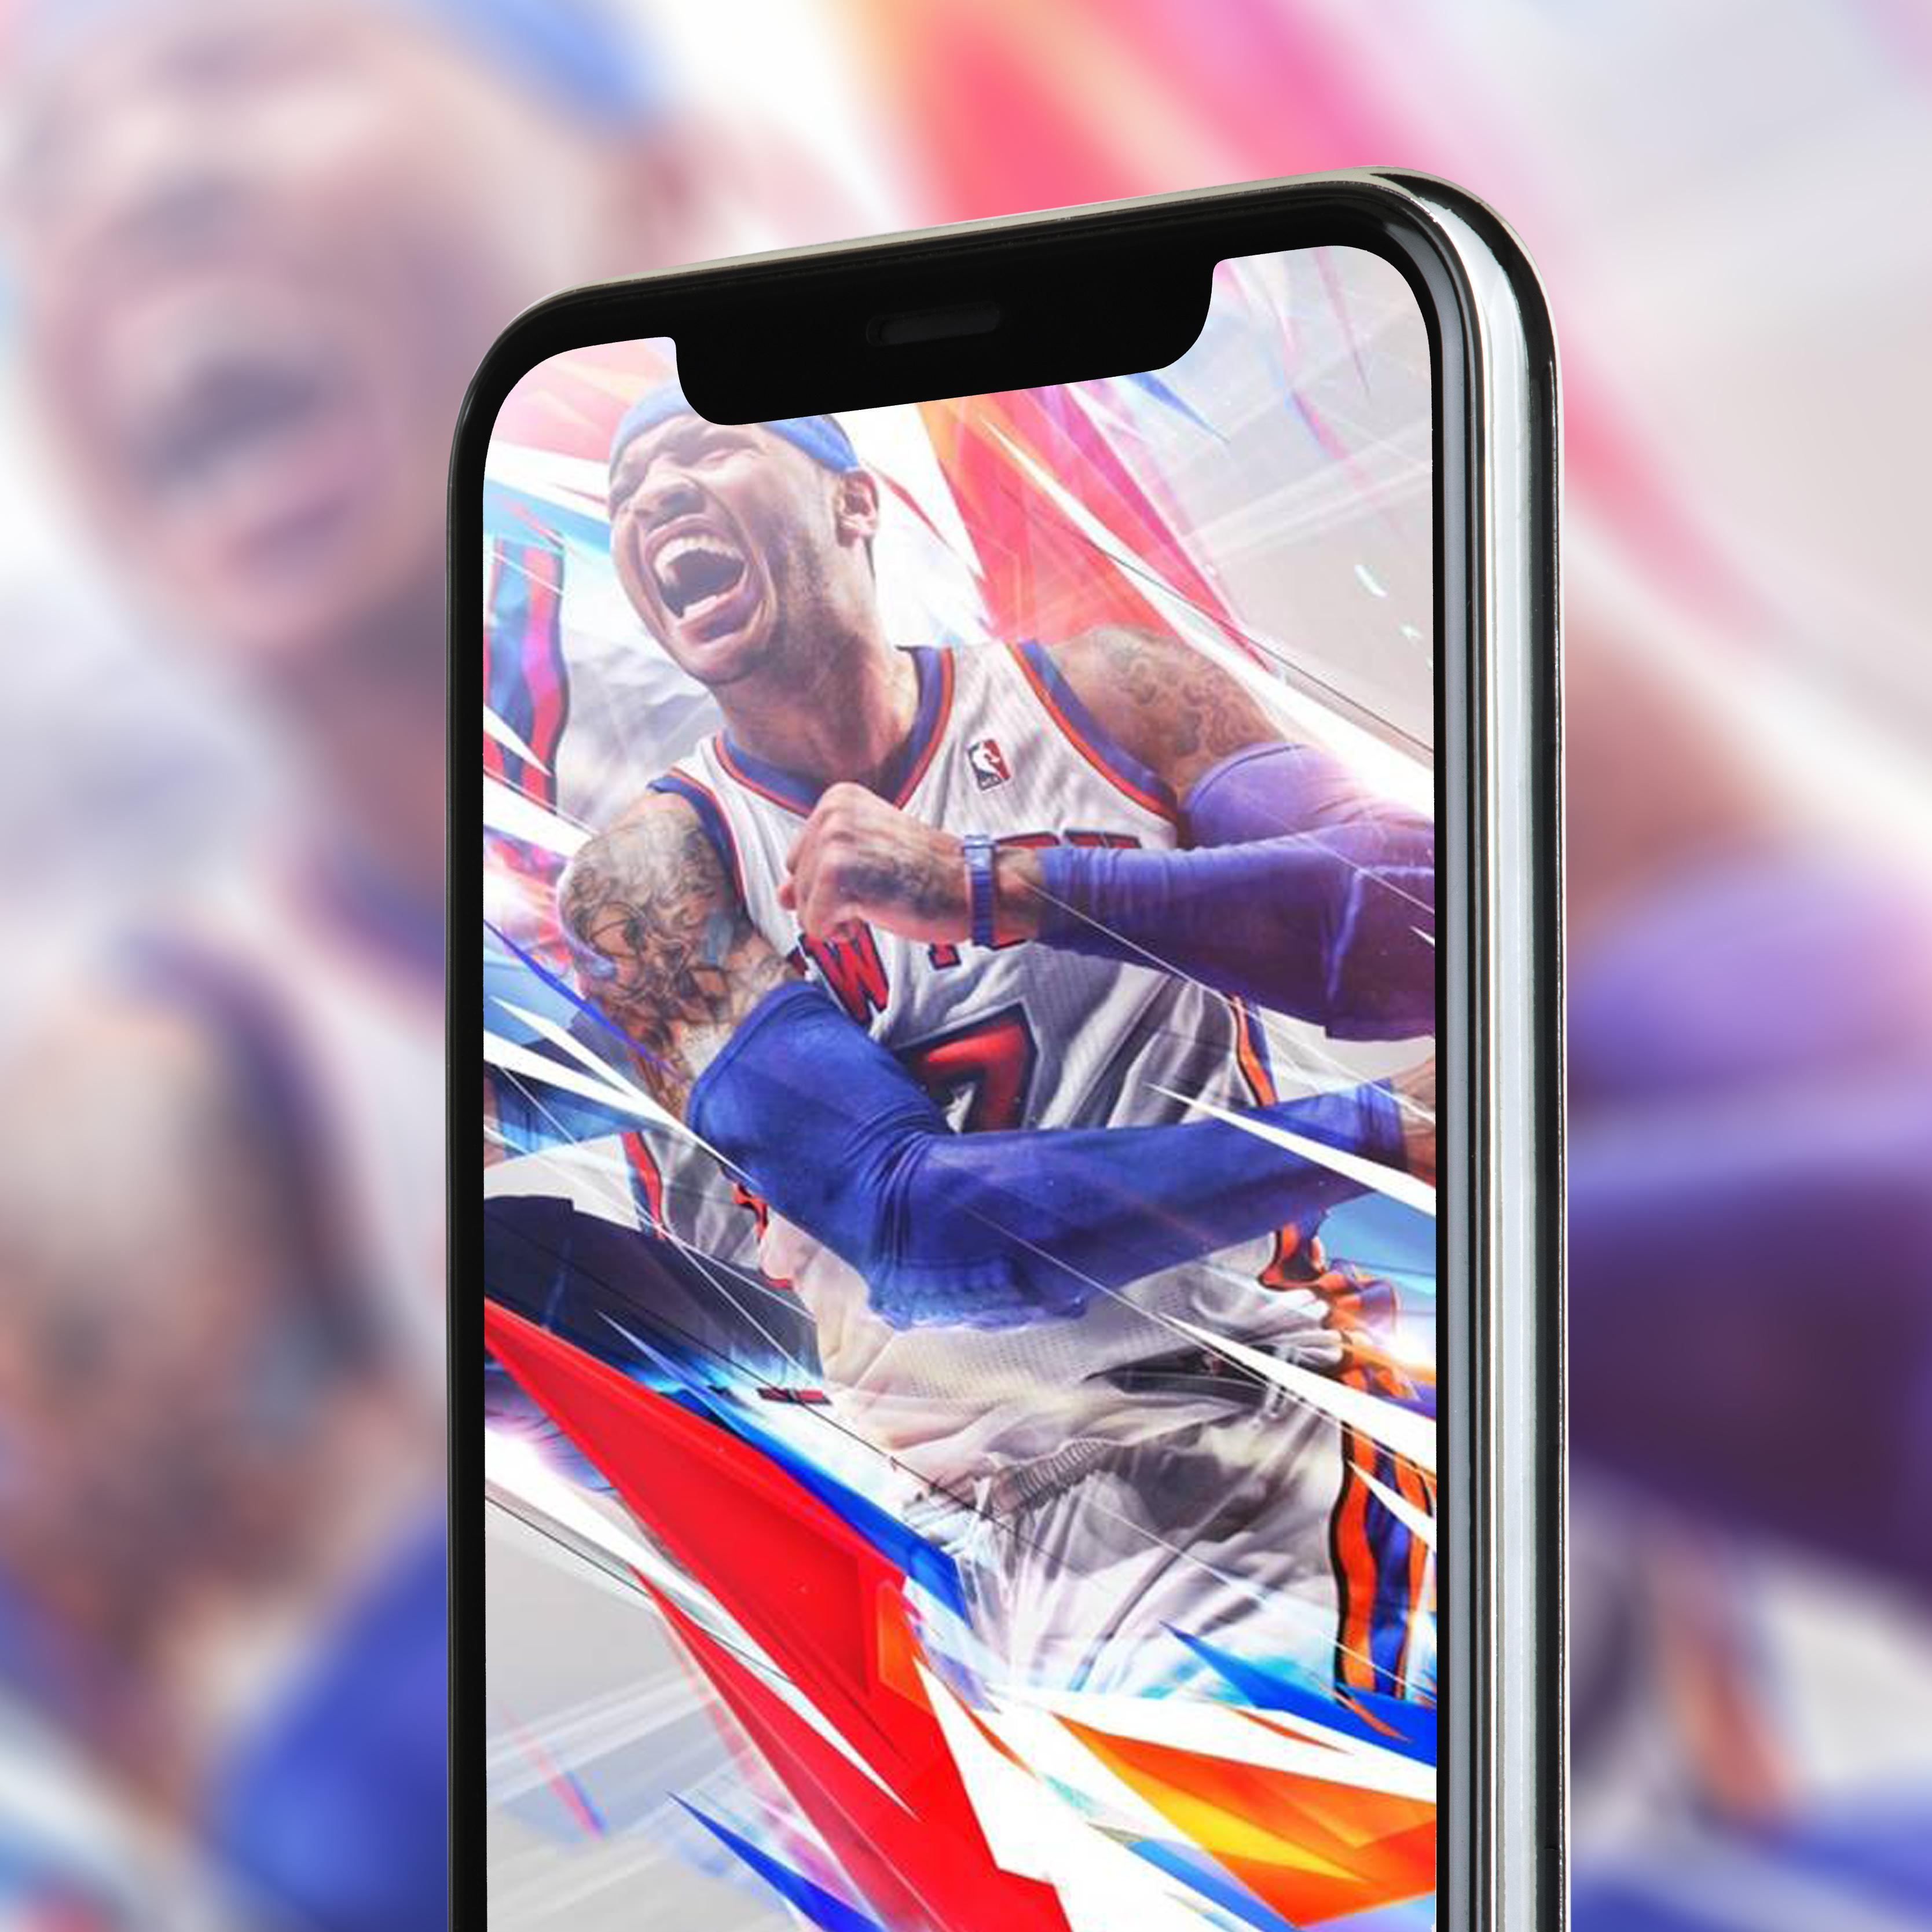 Nba Wallpaper Hd 2020 Basketball Images For Android Apk Download